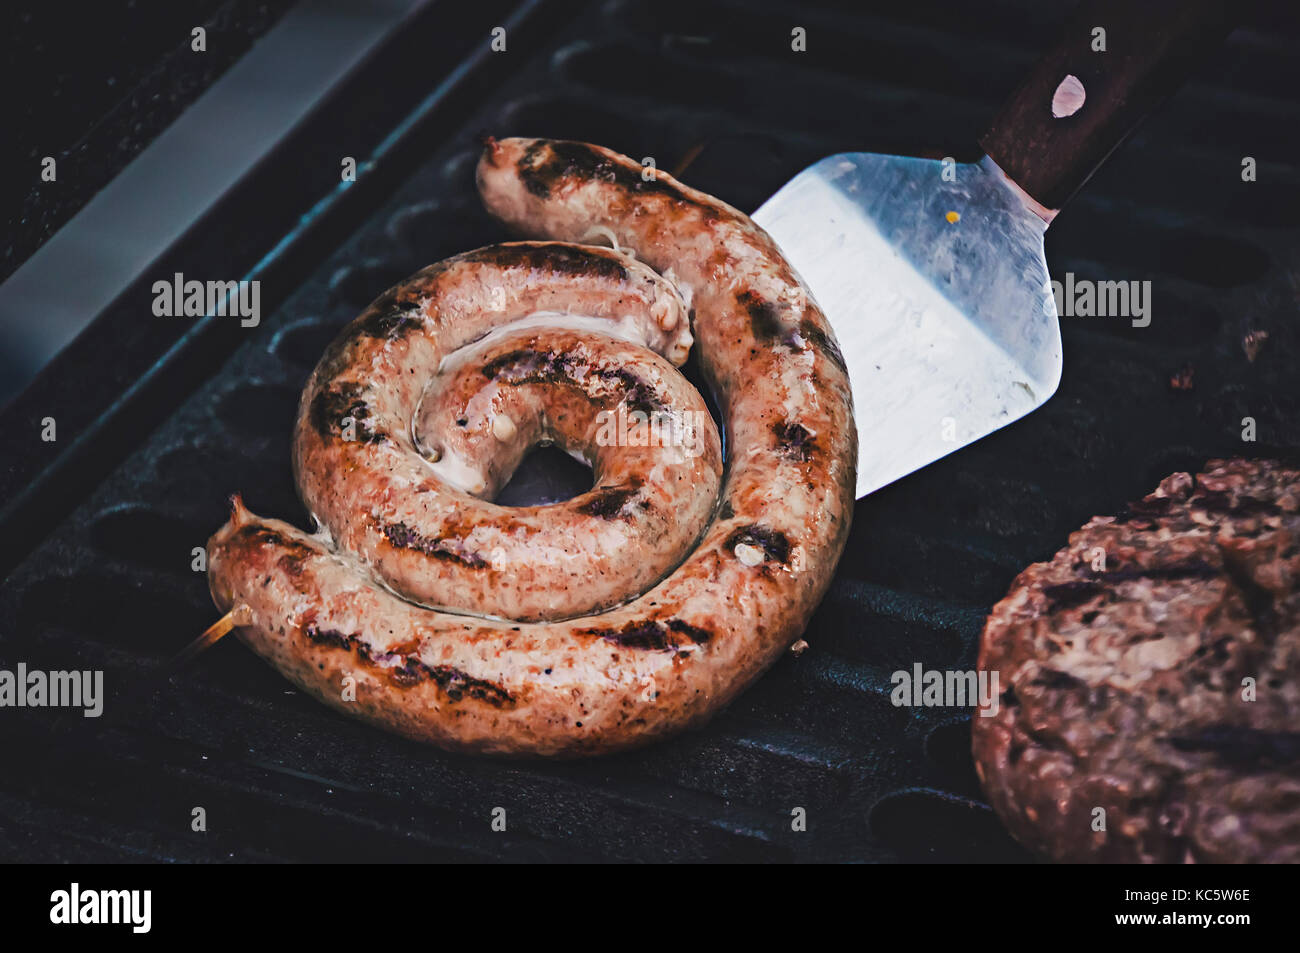 Grilled sausage with fresh rosemary on hot barbecue dish. the cook turns the frankfurter on the grill. Ingredients - Stock Image